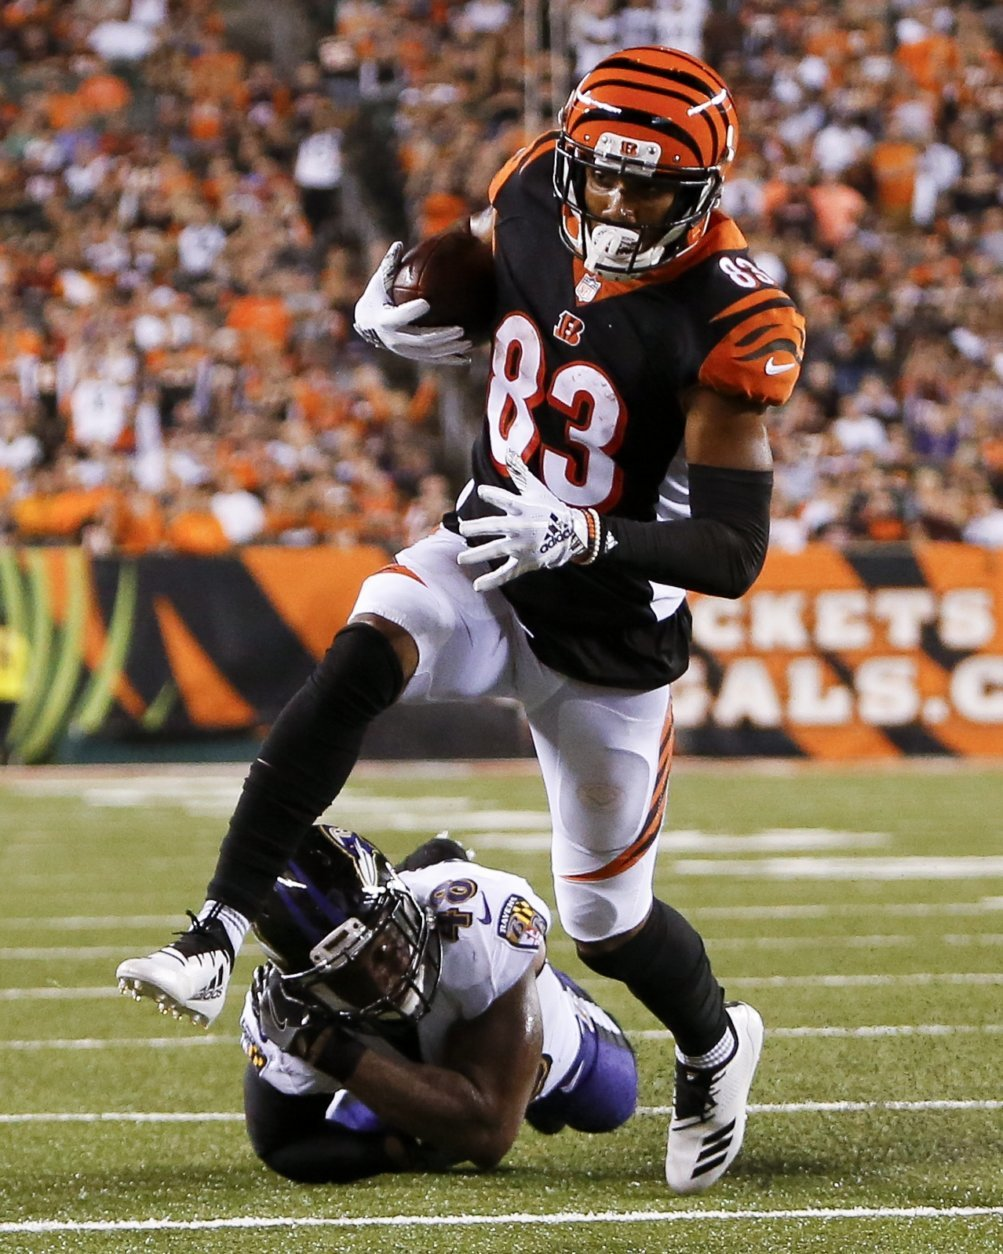 Cincinnati Bengals wide receiver Tyler Boyd (83) breaks away from Baltimore Ravens linebacker Patrick Onwuasor (48) to score a touchdown in the first half of an NFL football game, Thursday, Sept. 13, 2018, in Cincinnati. (AP Photo/Frank Victores)